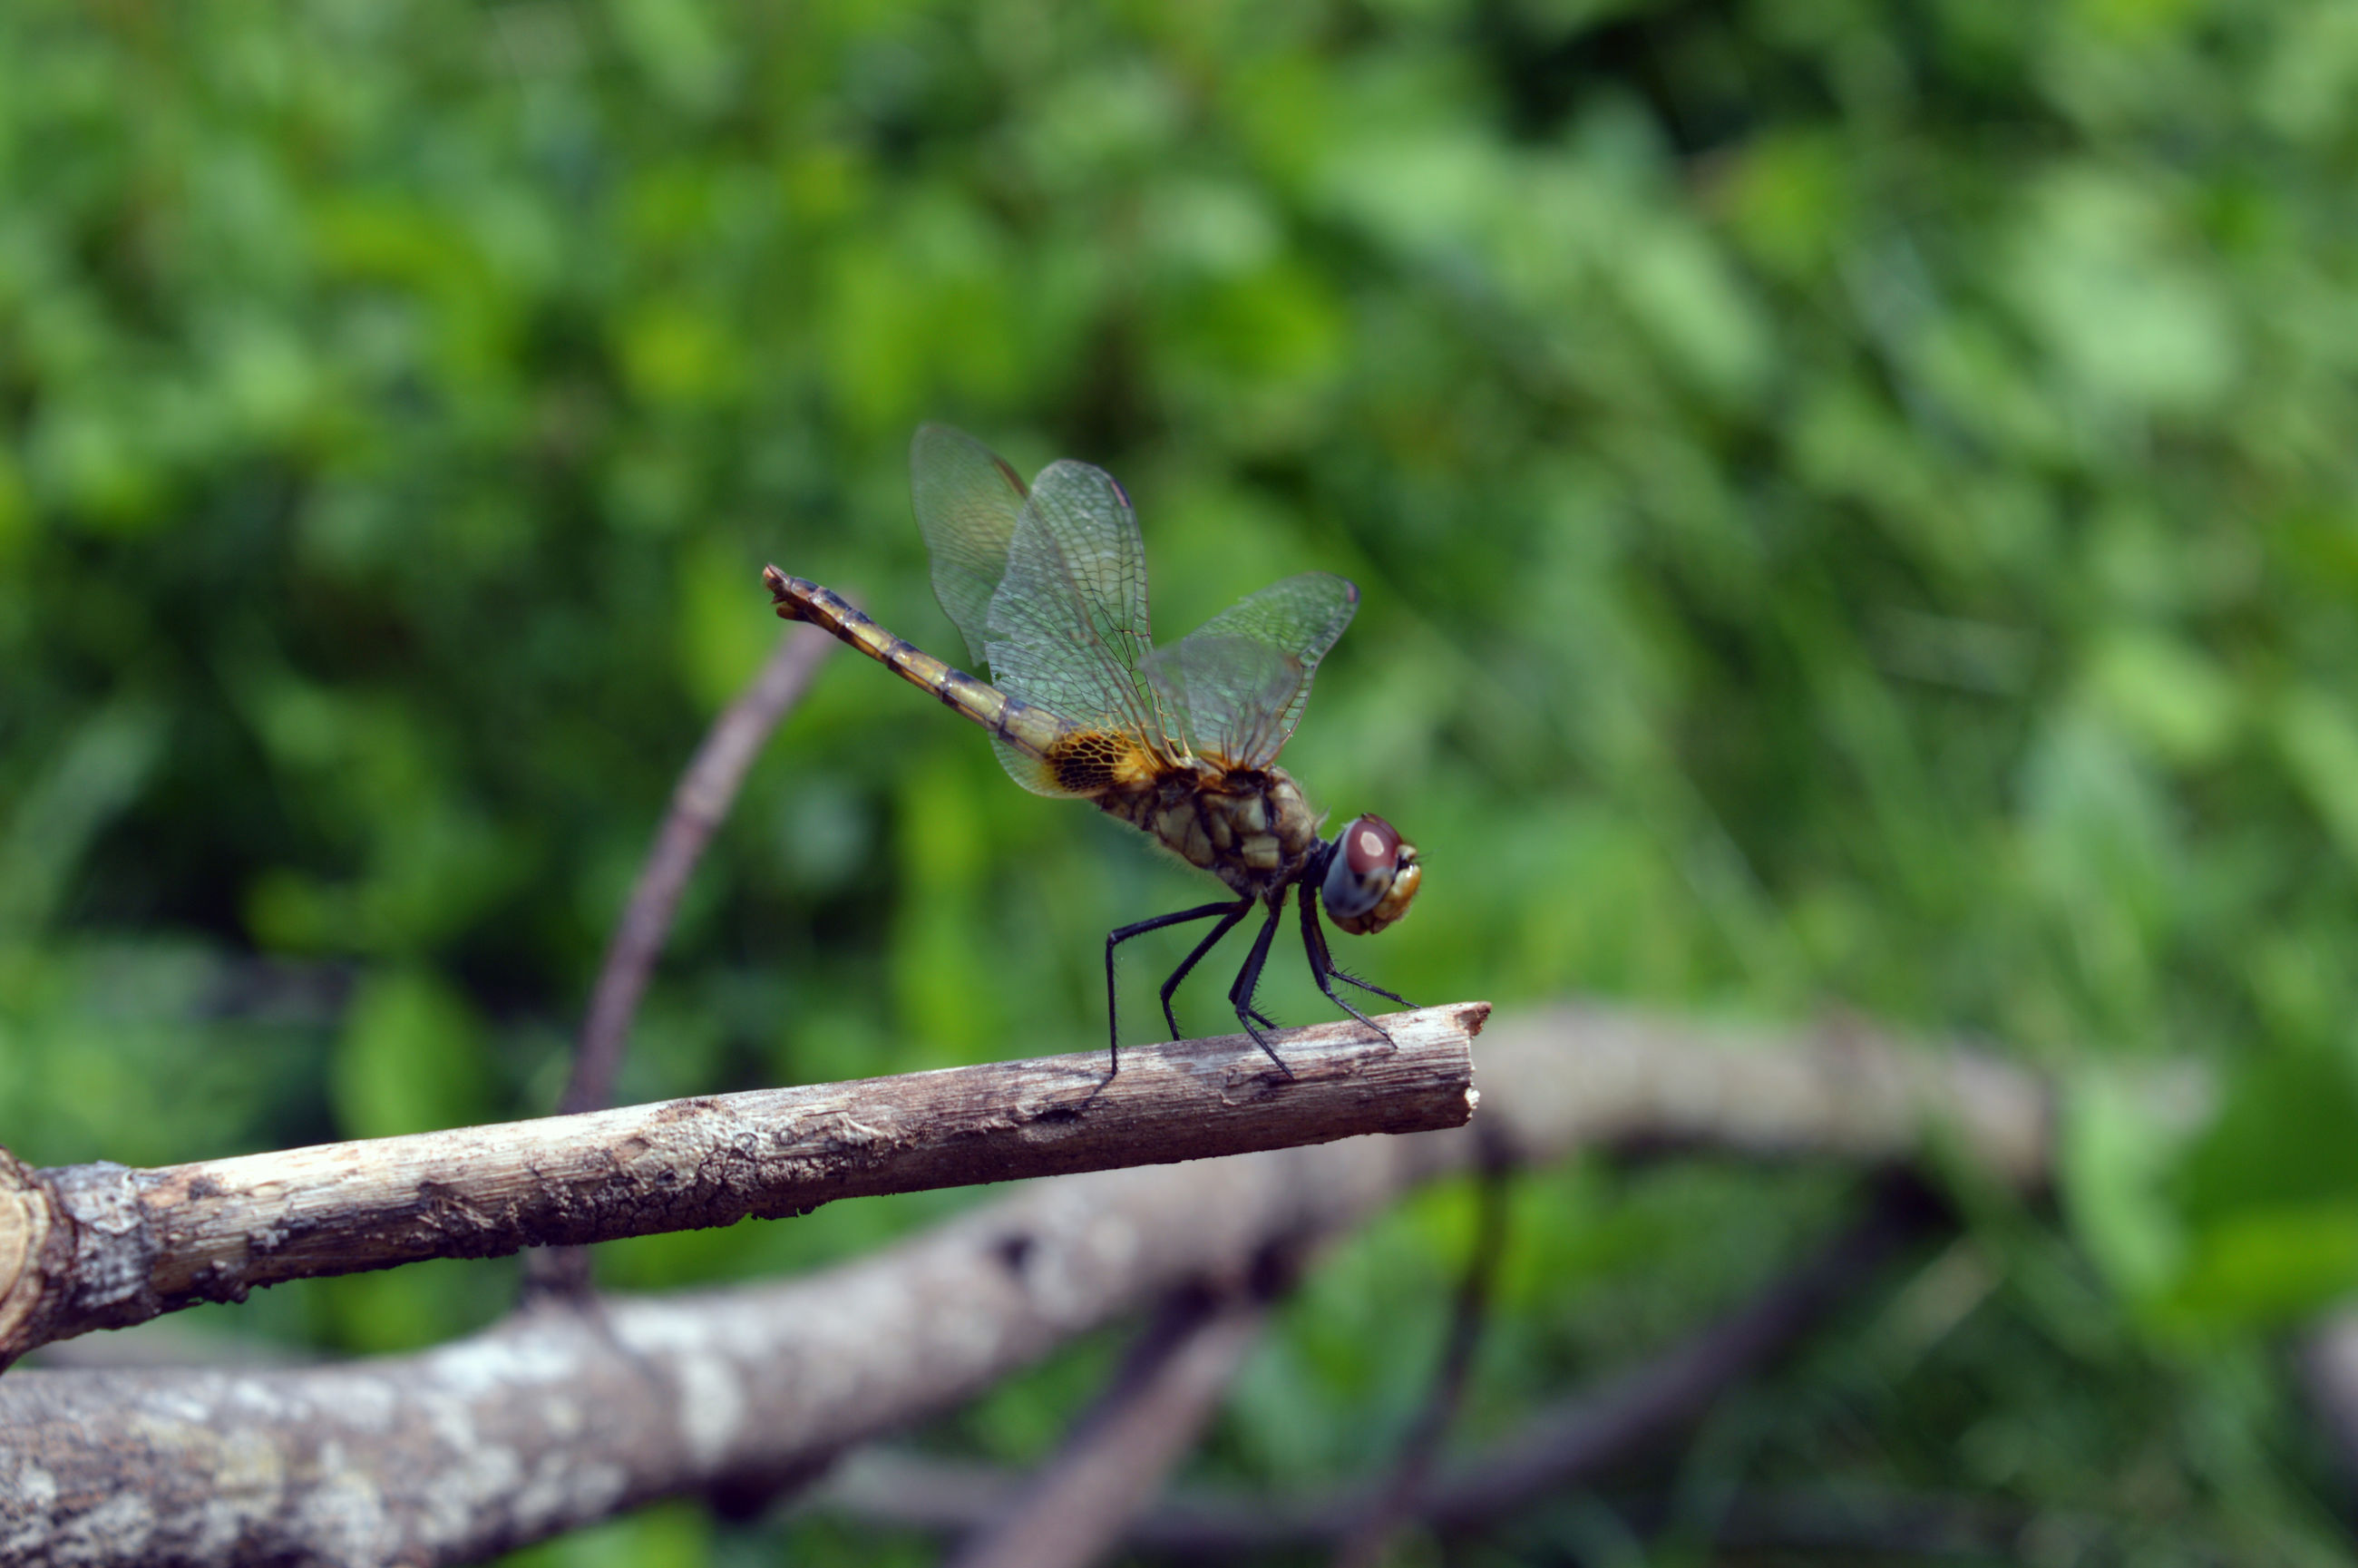 wildlife, animal themes, animals in the wild, one animal, insect, dragonfly, focus on foreground, perching, full length, zoology, twig, close-up, nature, animal wing, invertebrate, green color, outdoors, day, no people, winged